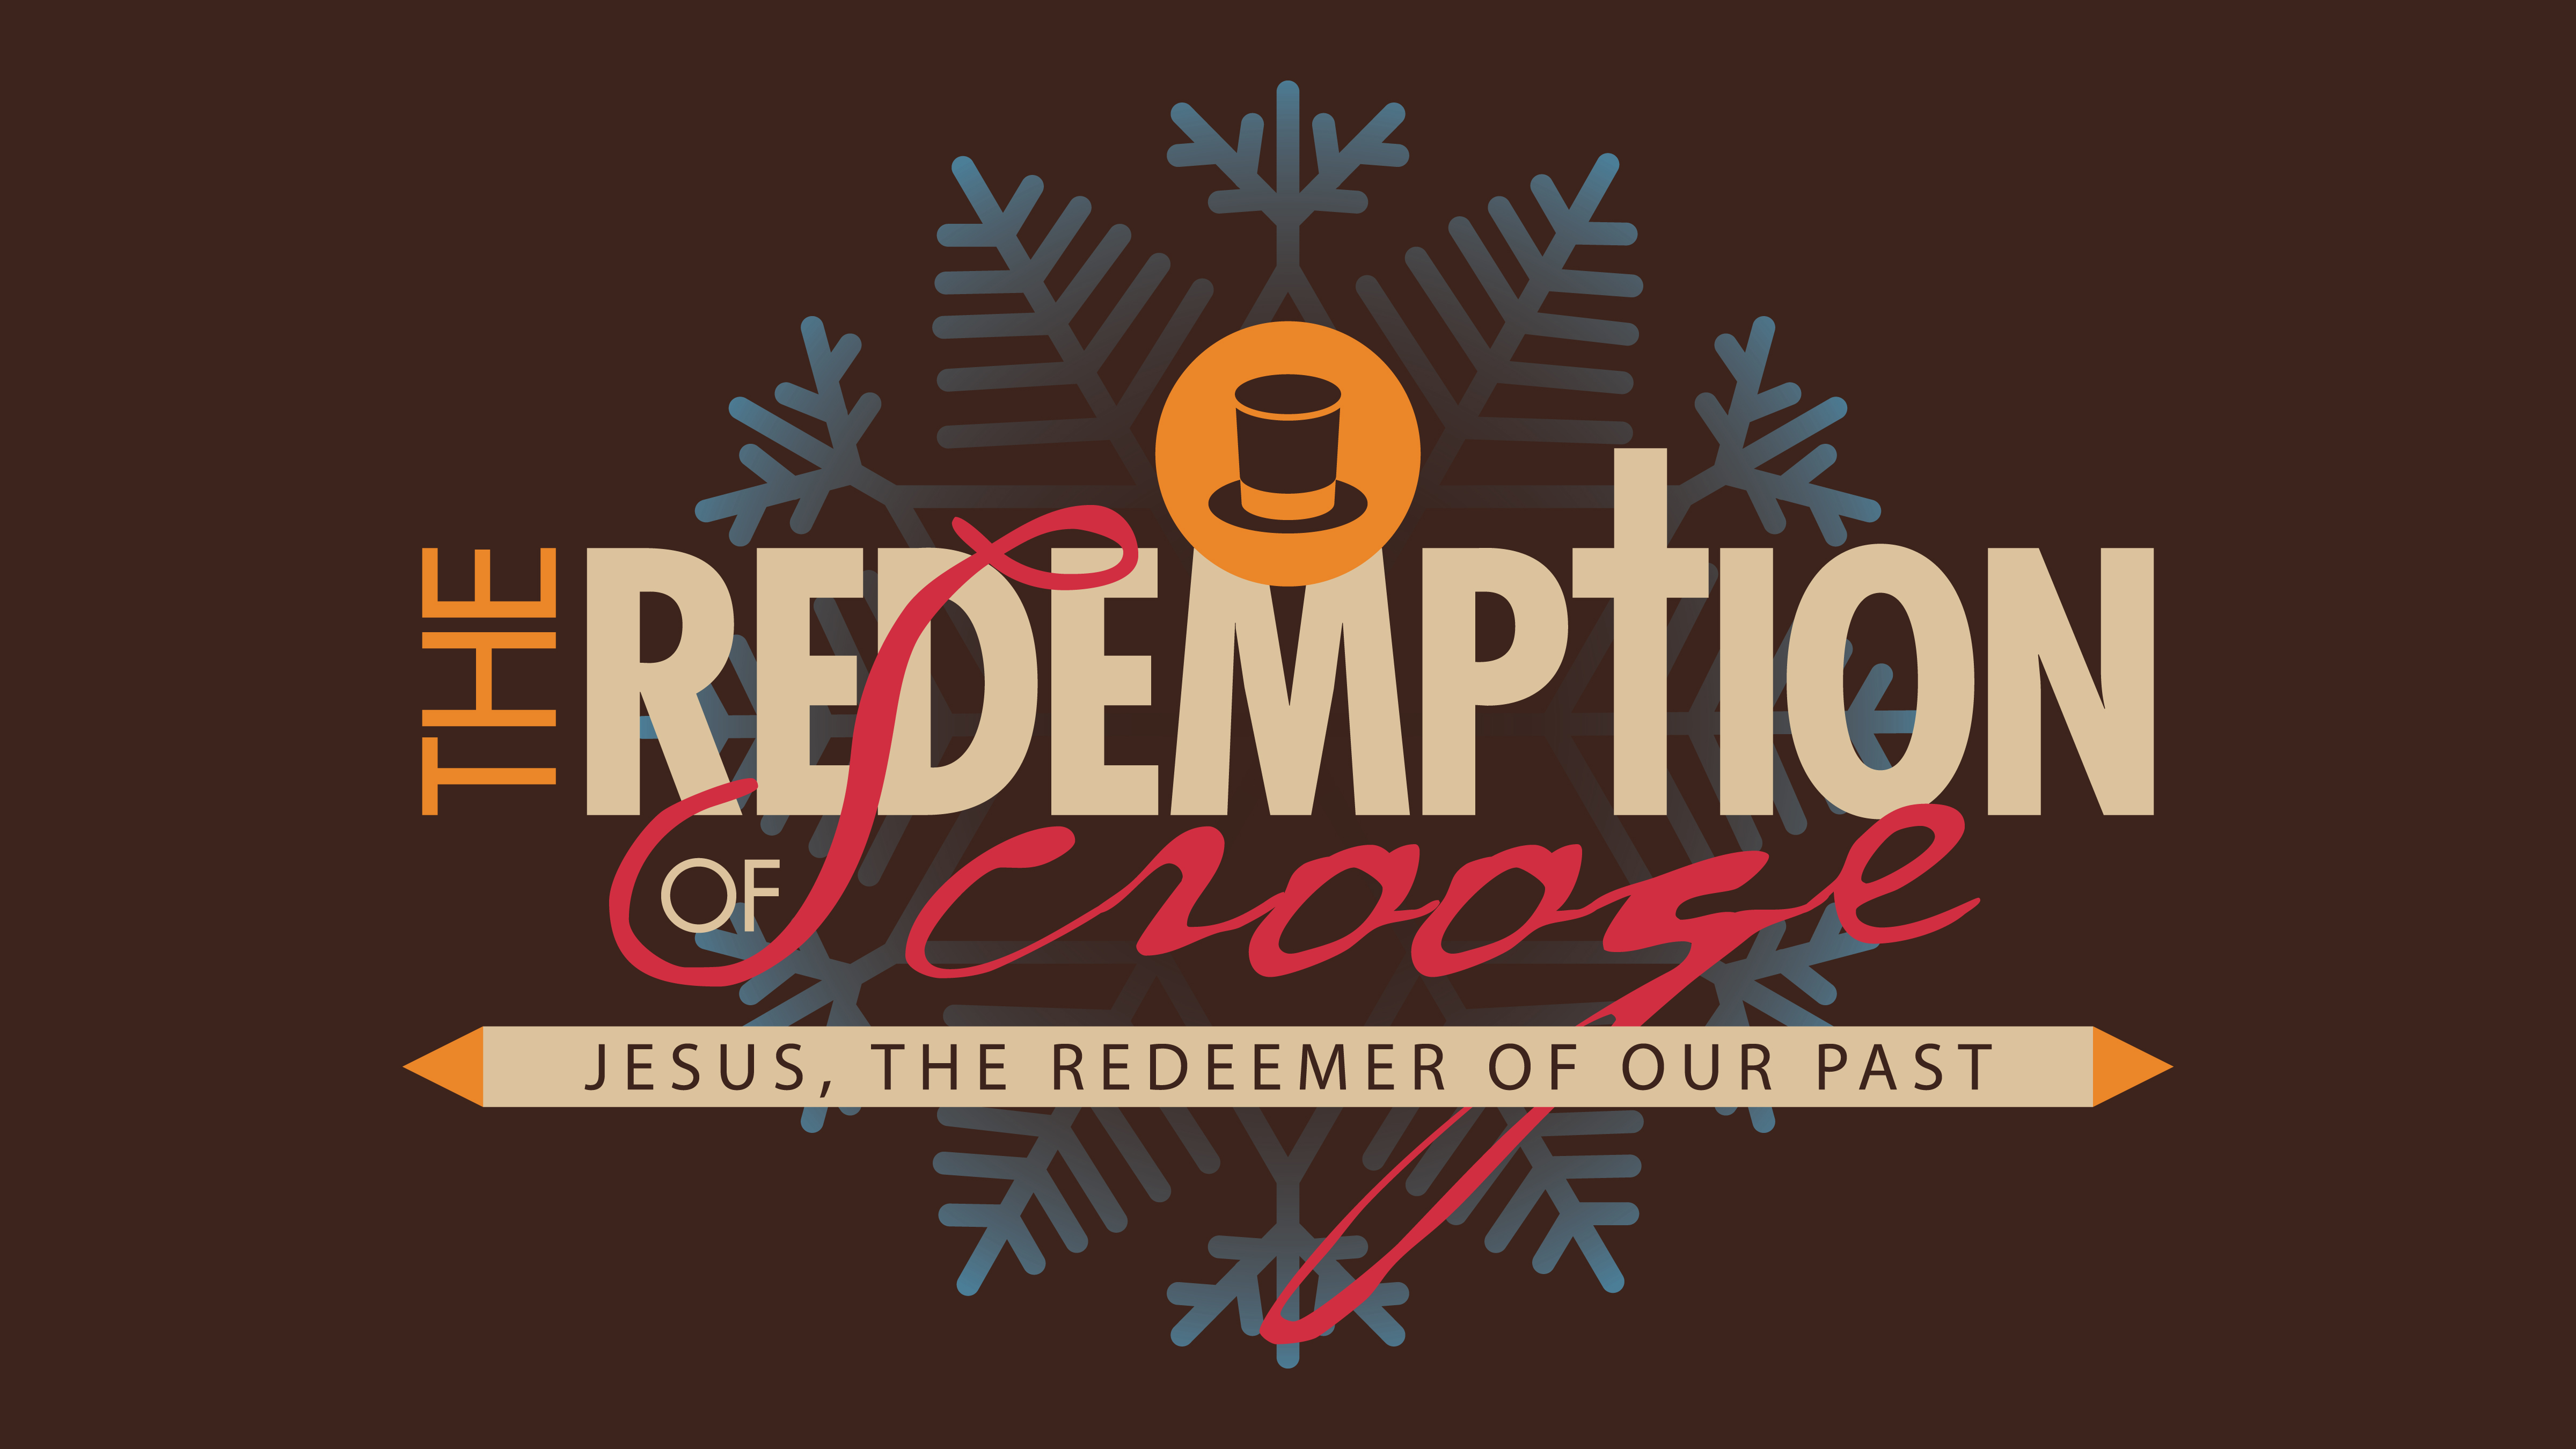 Jesus, the Redeemer of Our Past